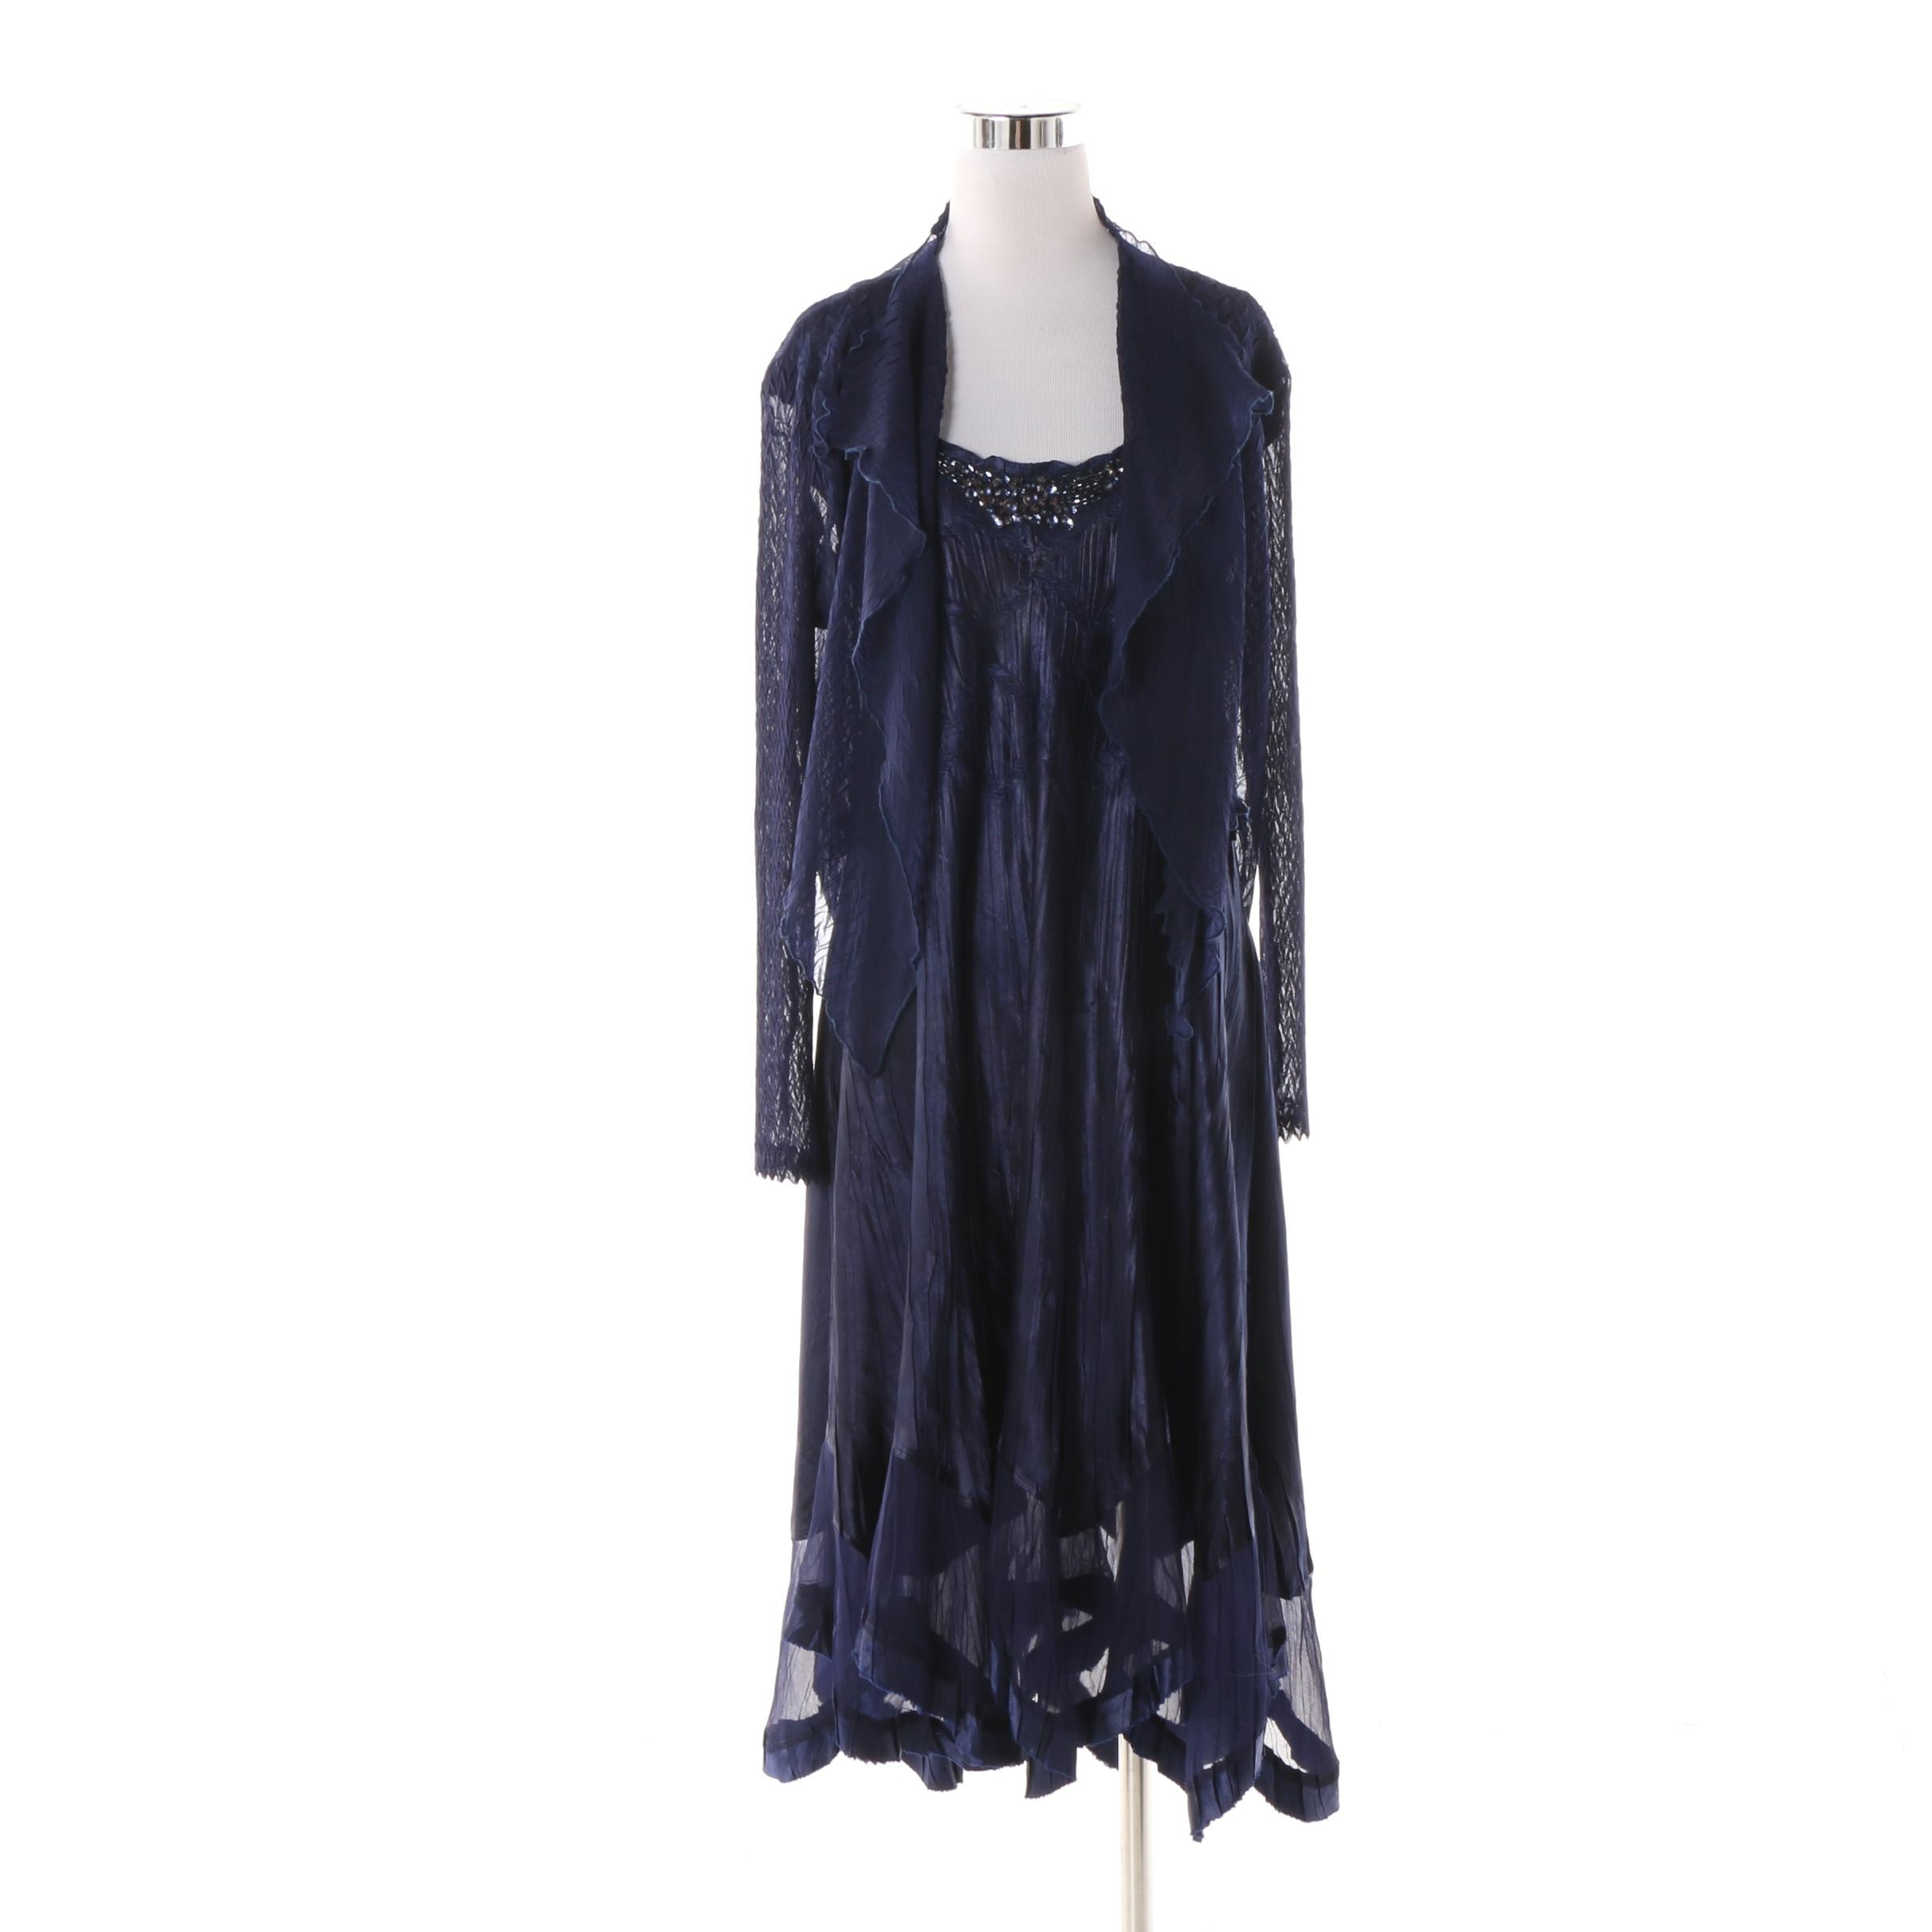 Komarov Blue Dress with Matching Shrug featuring Sheer Handkerchief Hem